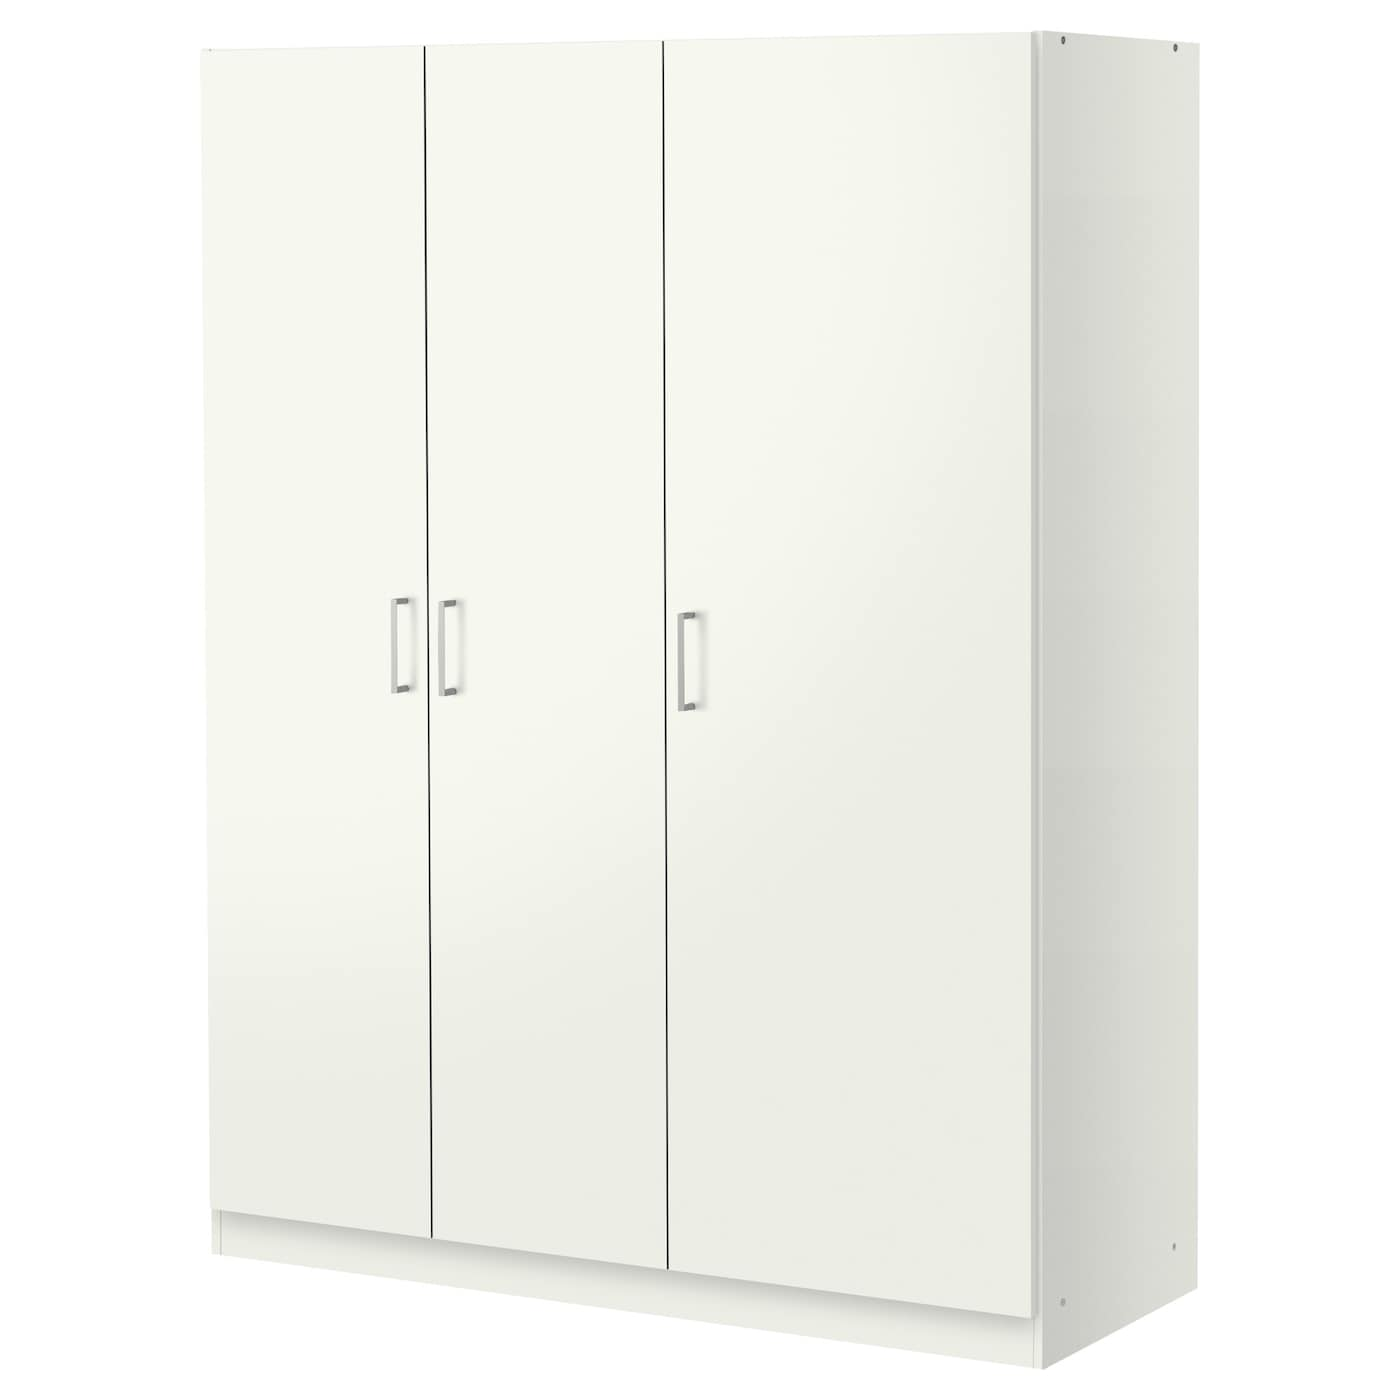 IKEA DOMBÅS Wardrobe Adjustable Shelves Make It Easy To Customise The Space  According To Your Needs